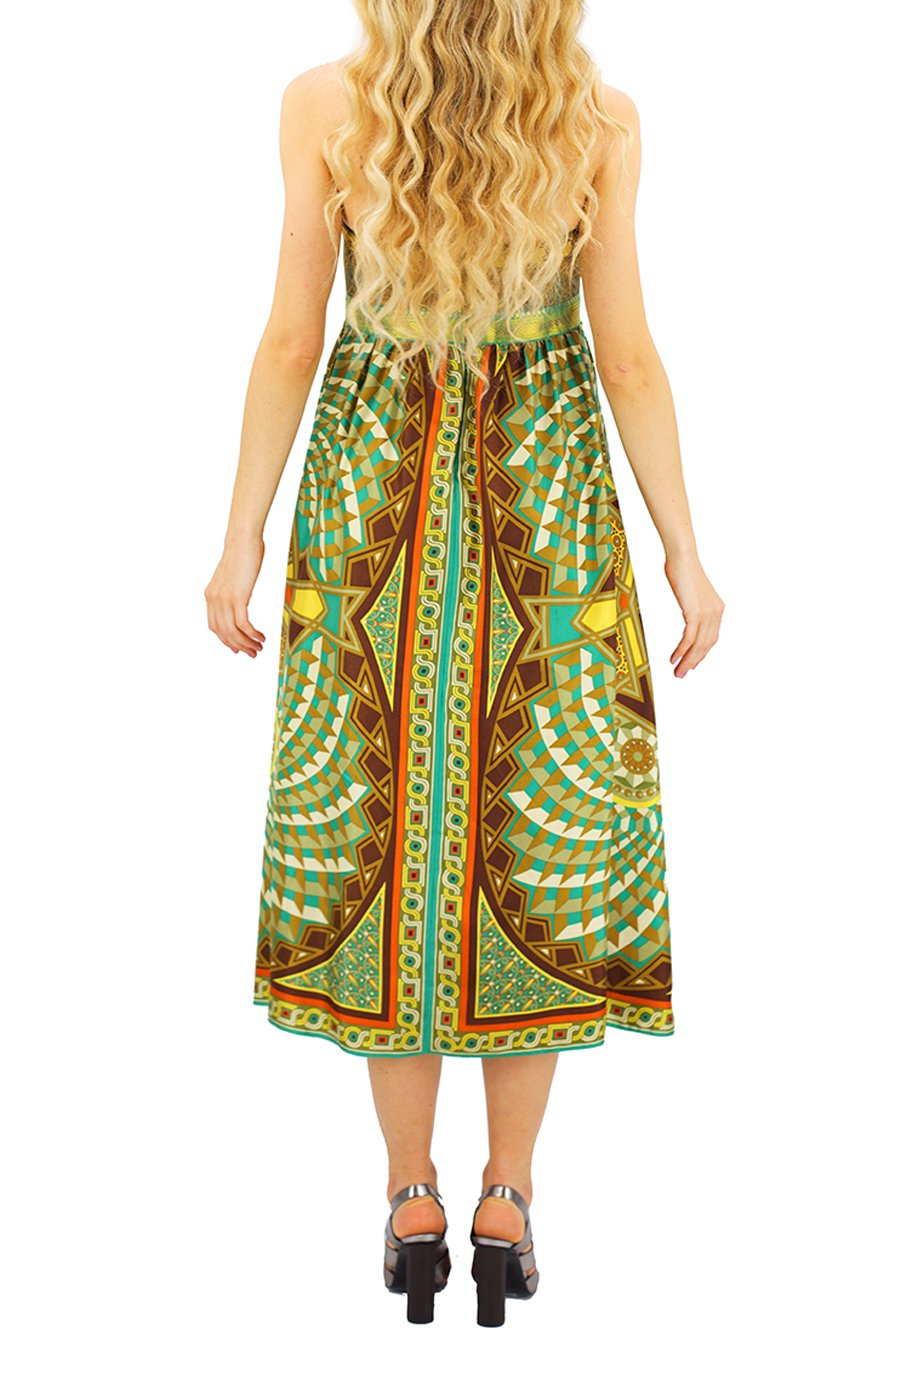 Nicole Miller Strapless Brown and Green Geometric Print Dress